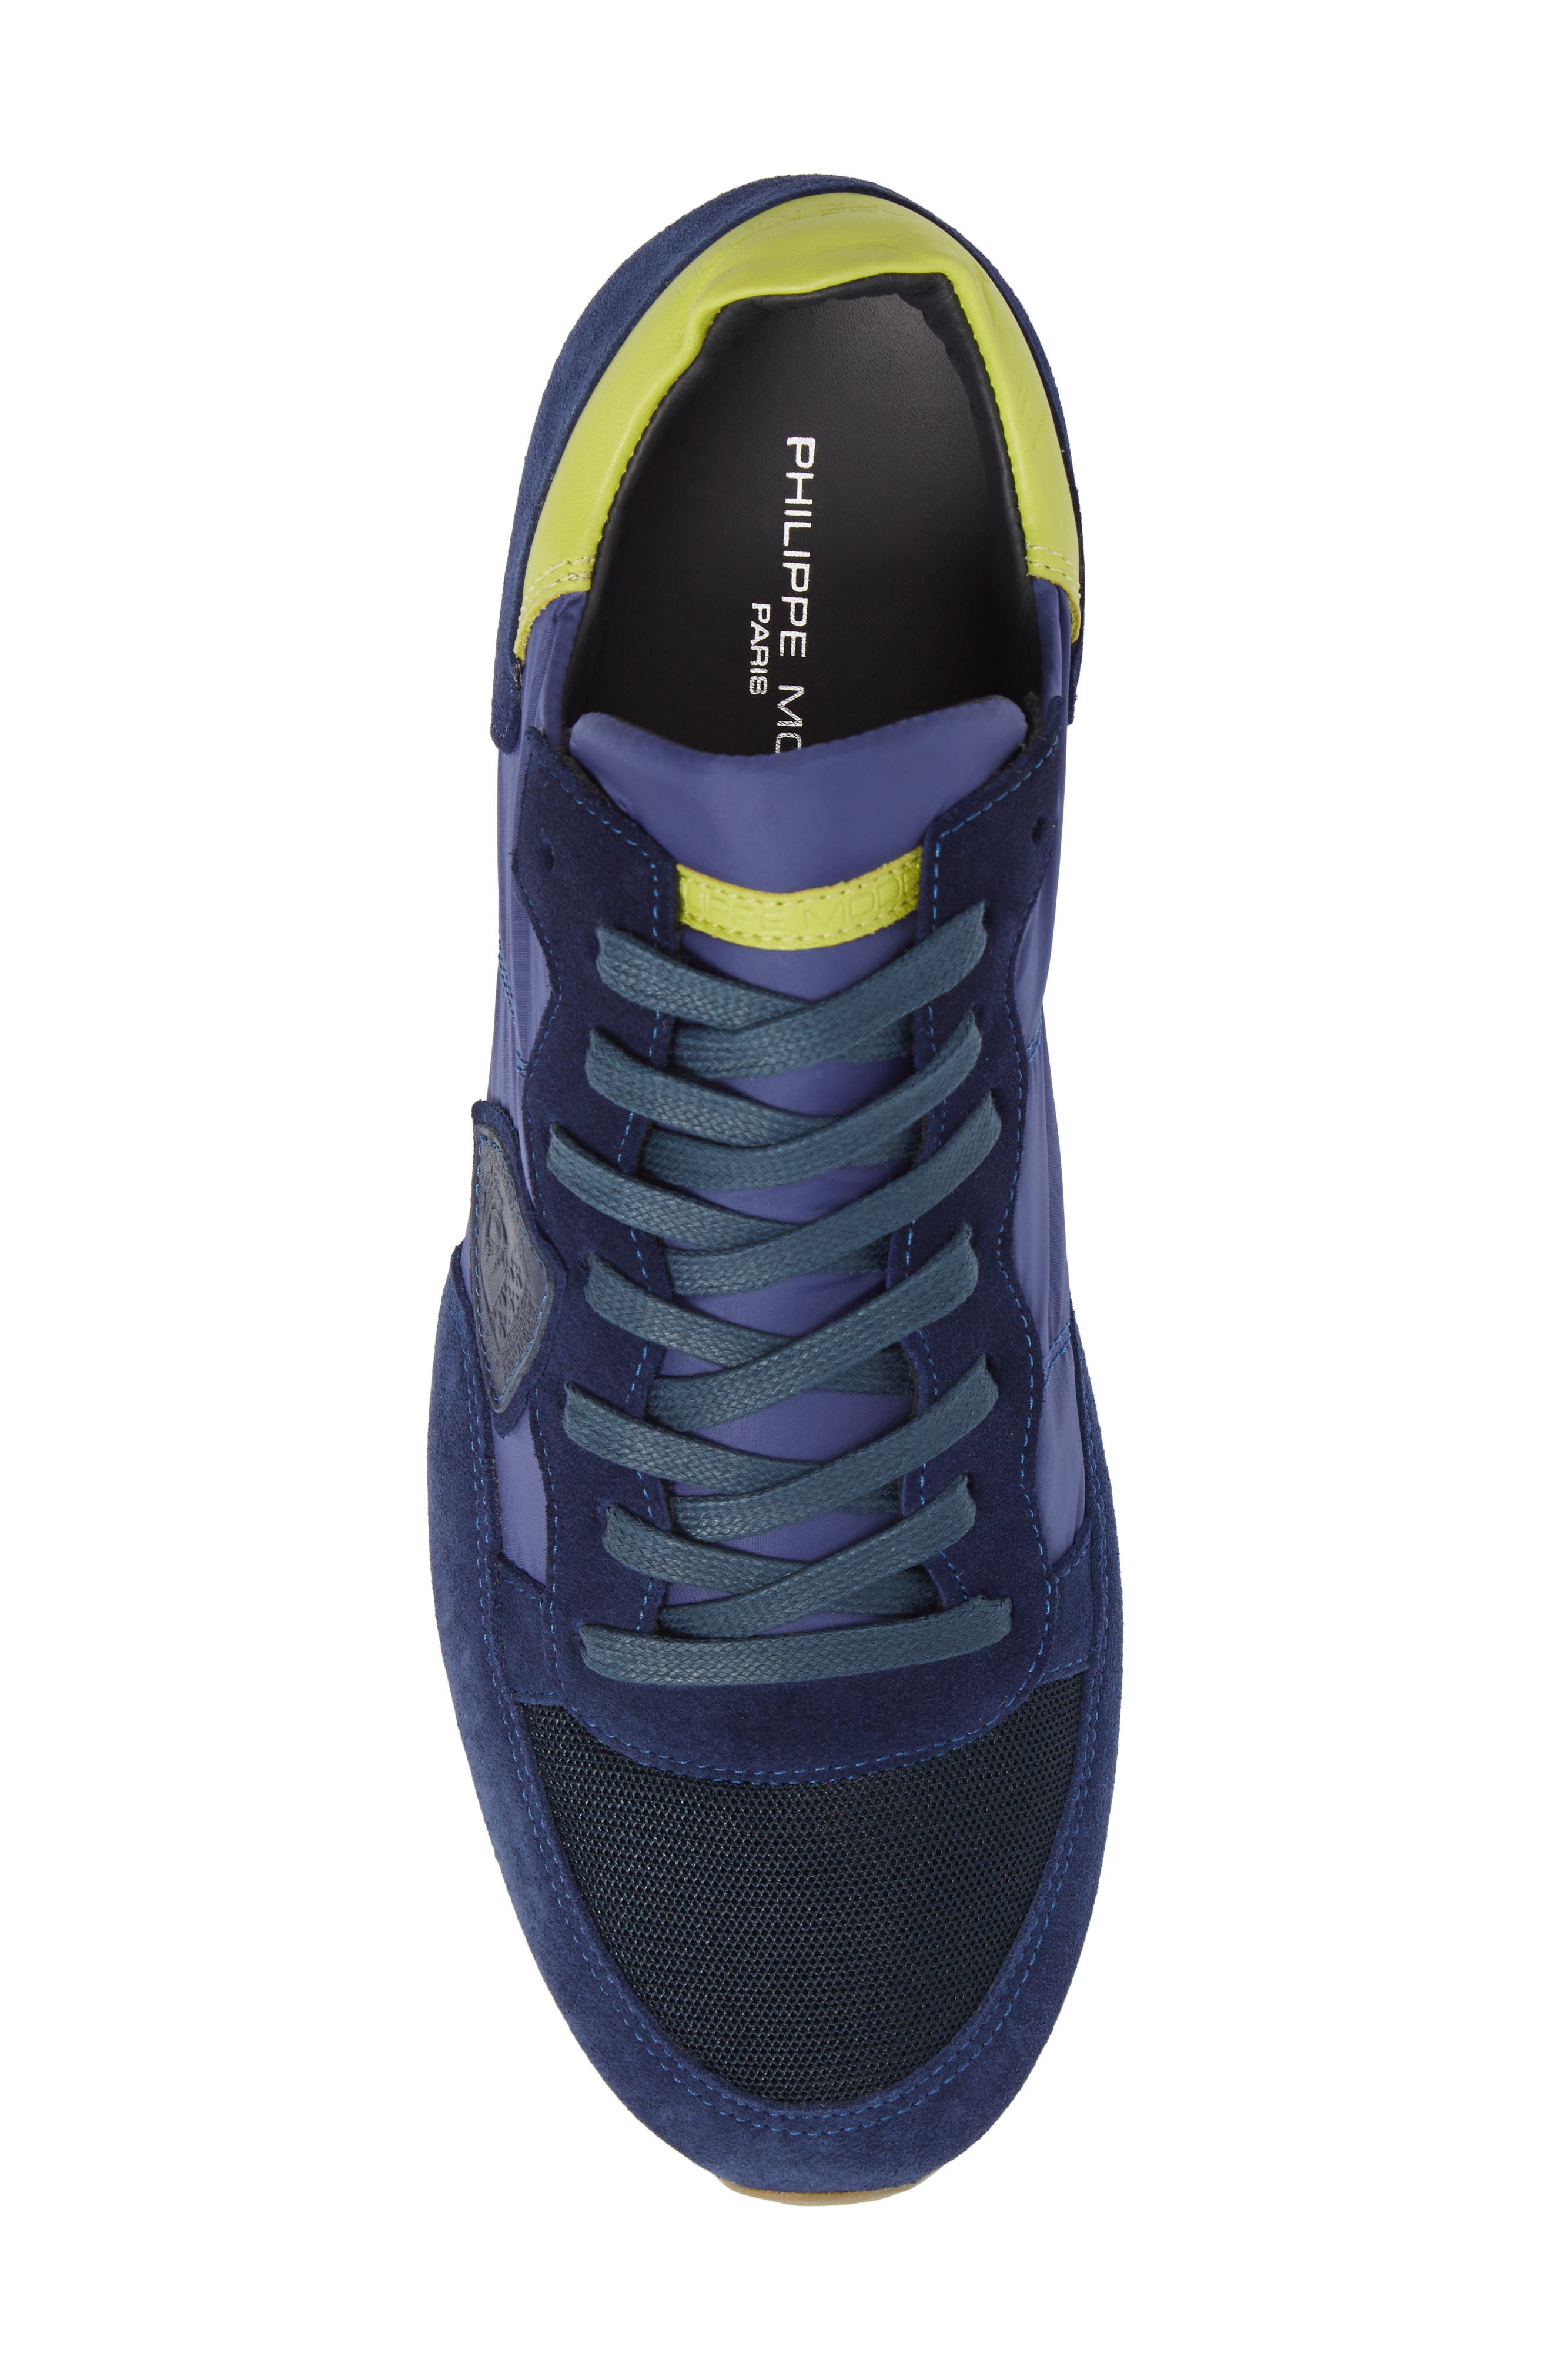 Tropez Low Top Sneaker,                             Alternate thumbnail 5, color,                             430